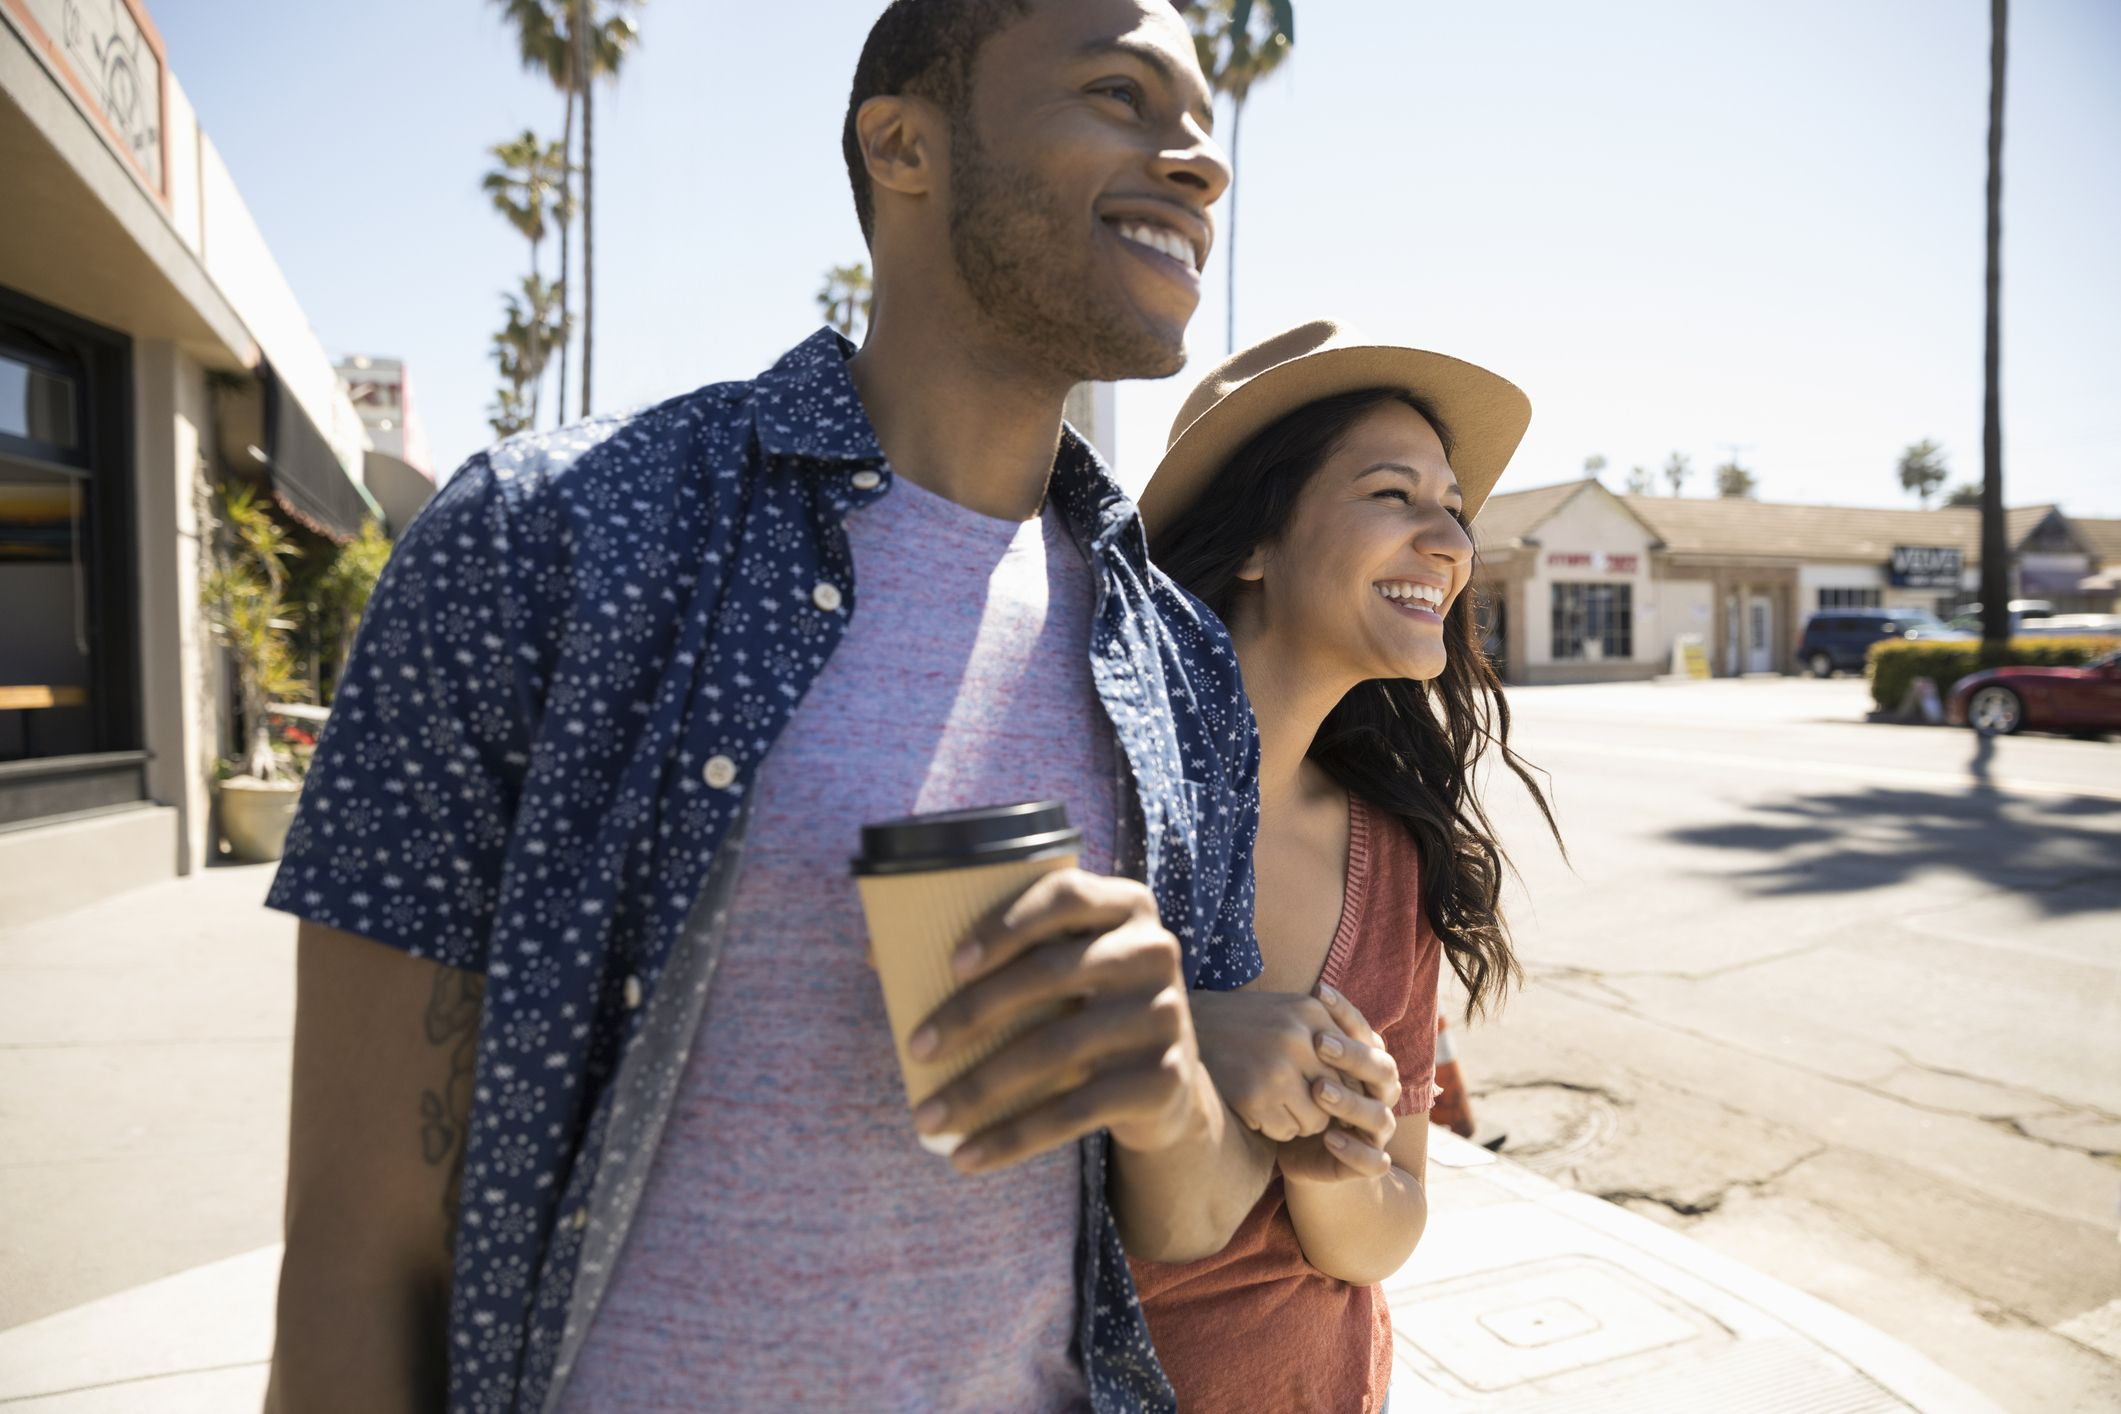 Smiling couple drinking coffee and walking on sunny sidewalk